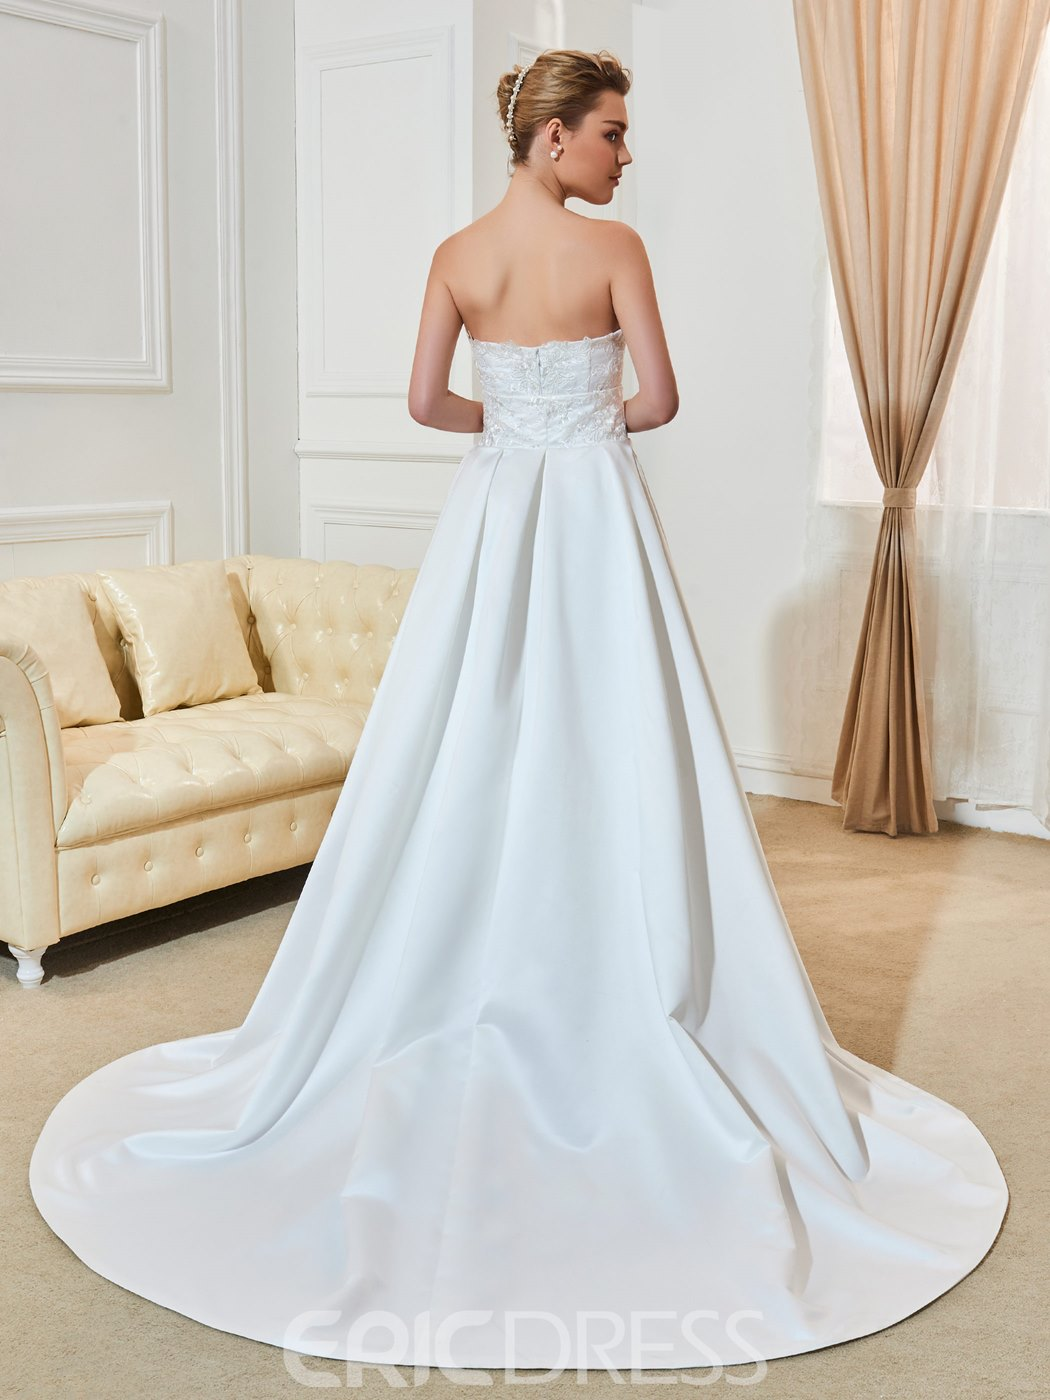 Ericdress High Quality Appliques Lace Sweetheart A Line Wedding Dress